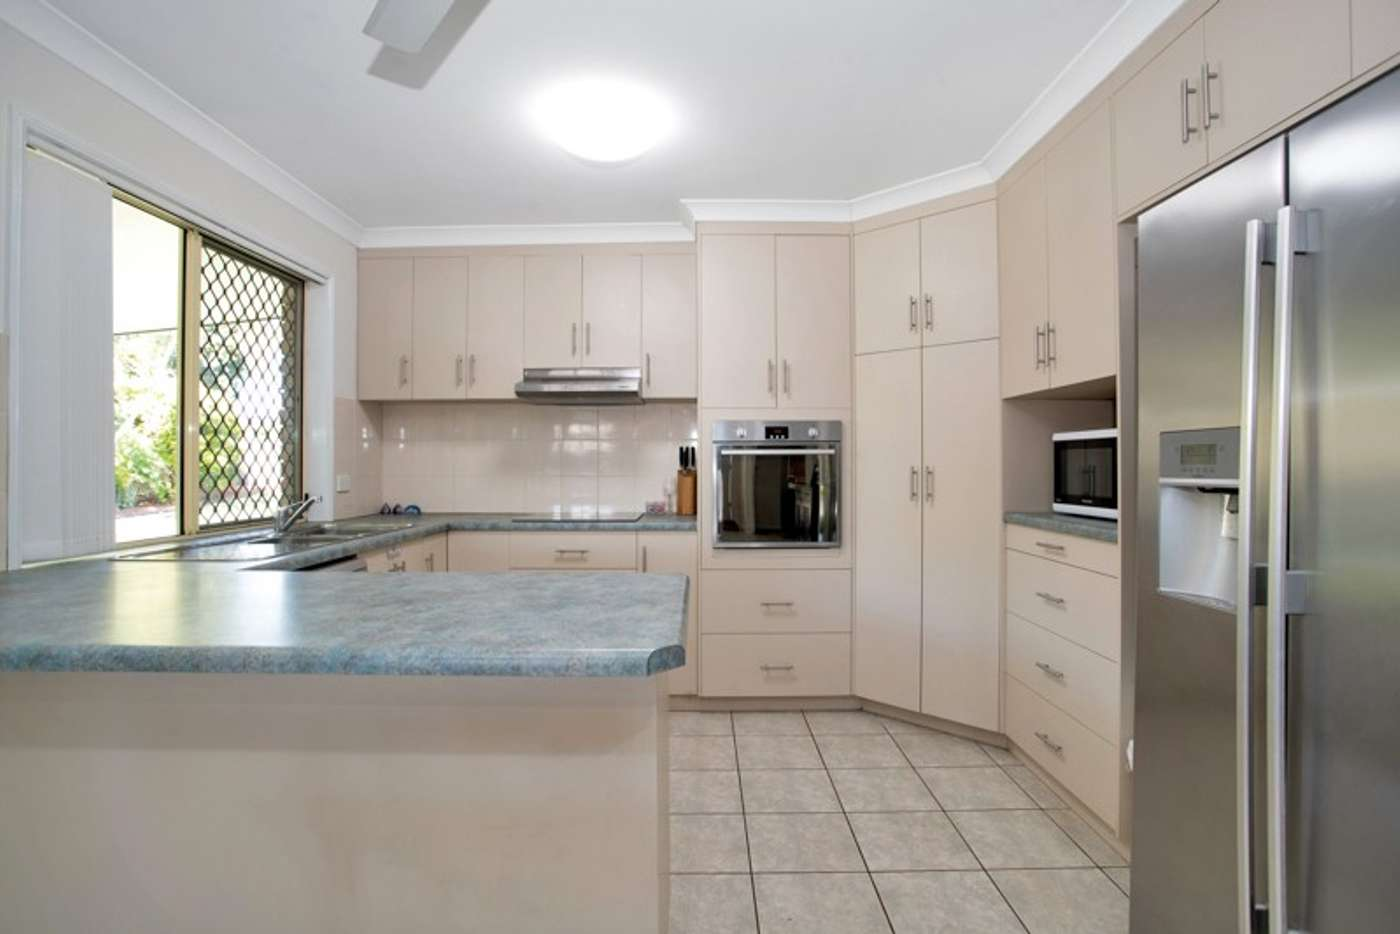 Seventh view of Homely house listing, 8 Galashiels Street, Beaconsfield QLD 4740